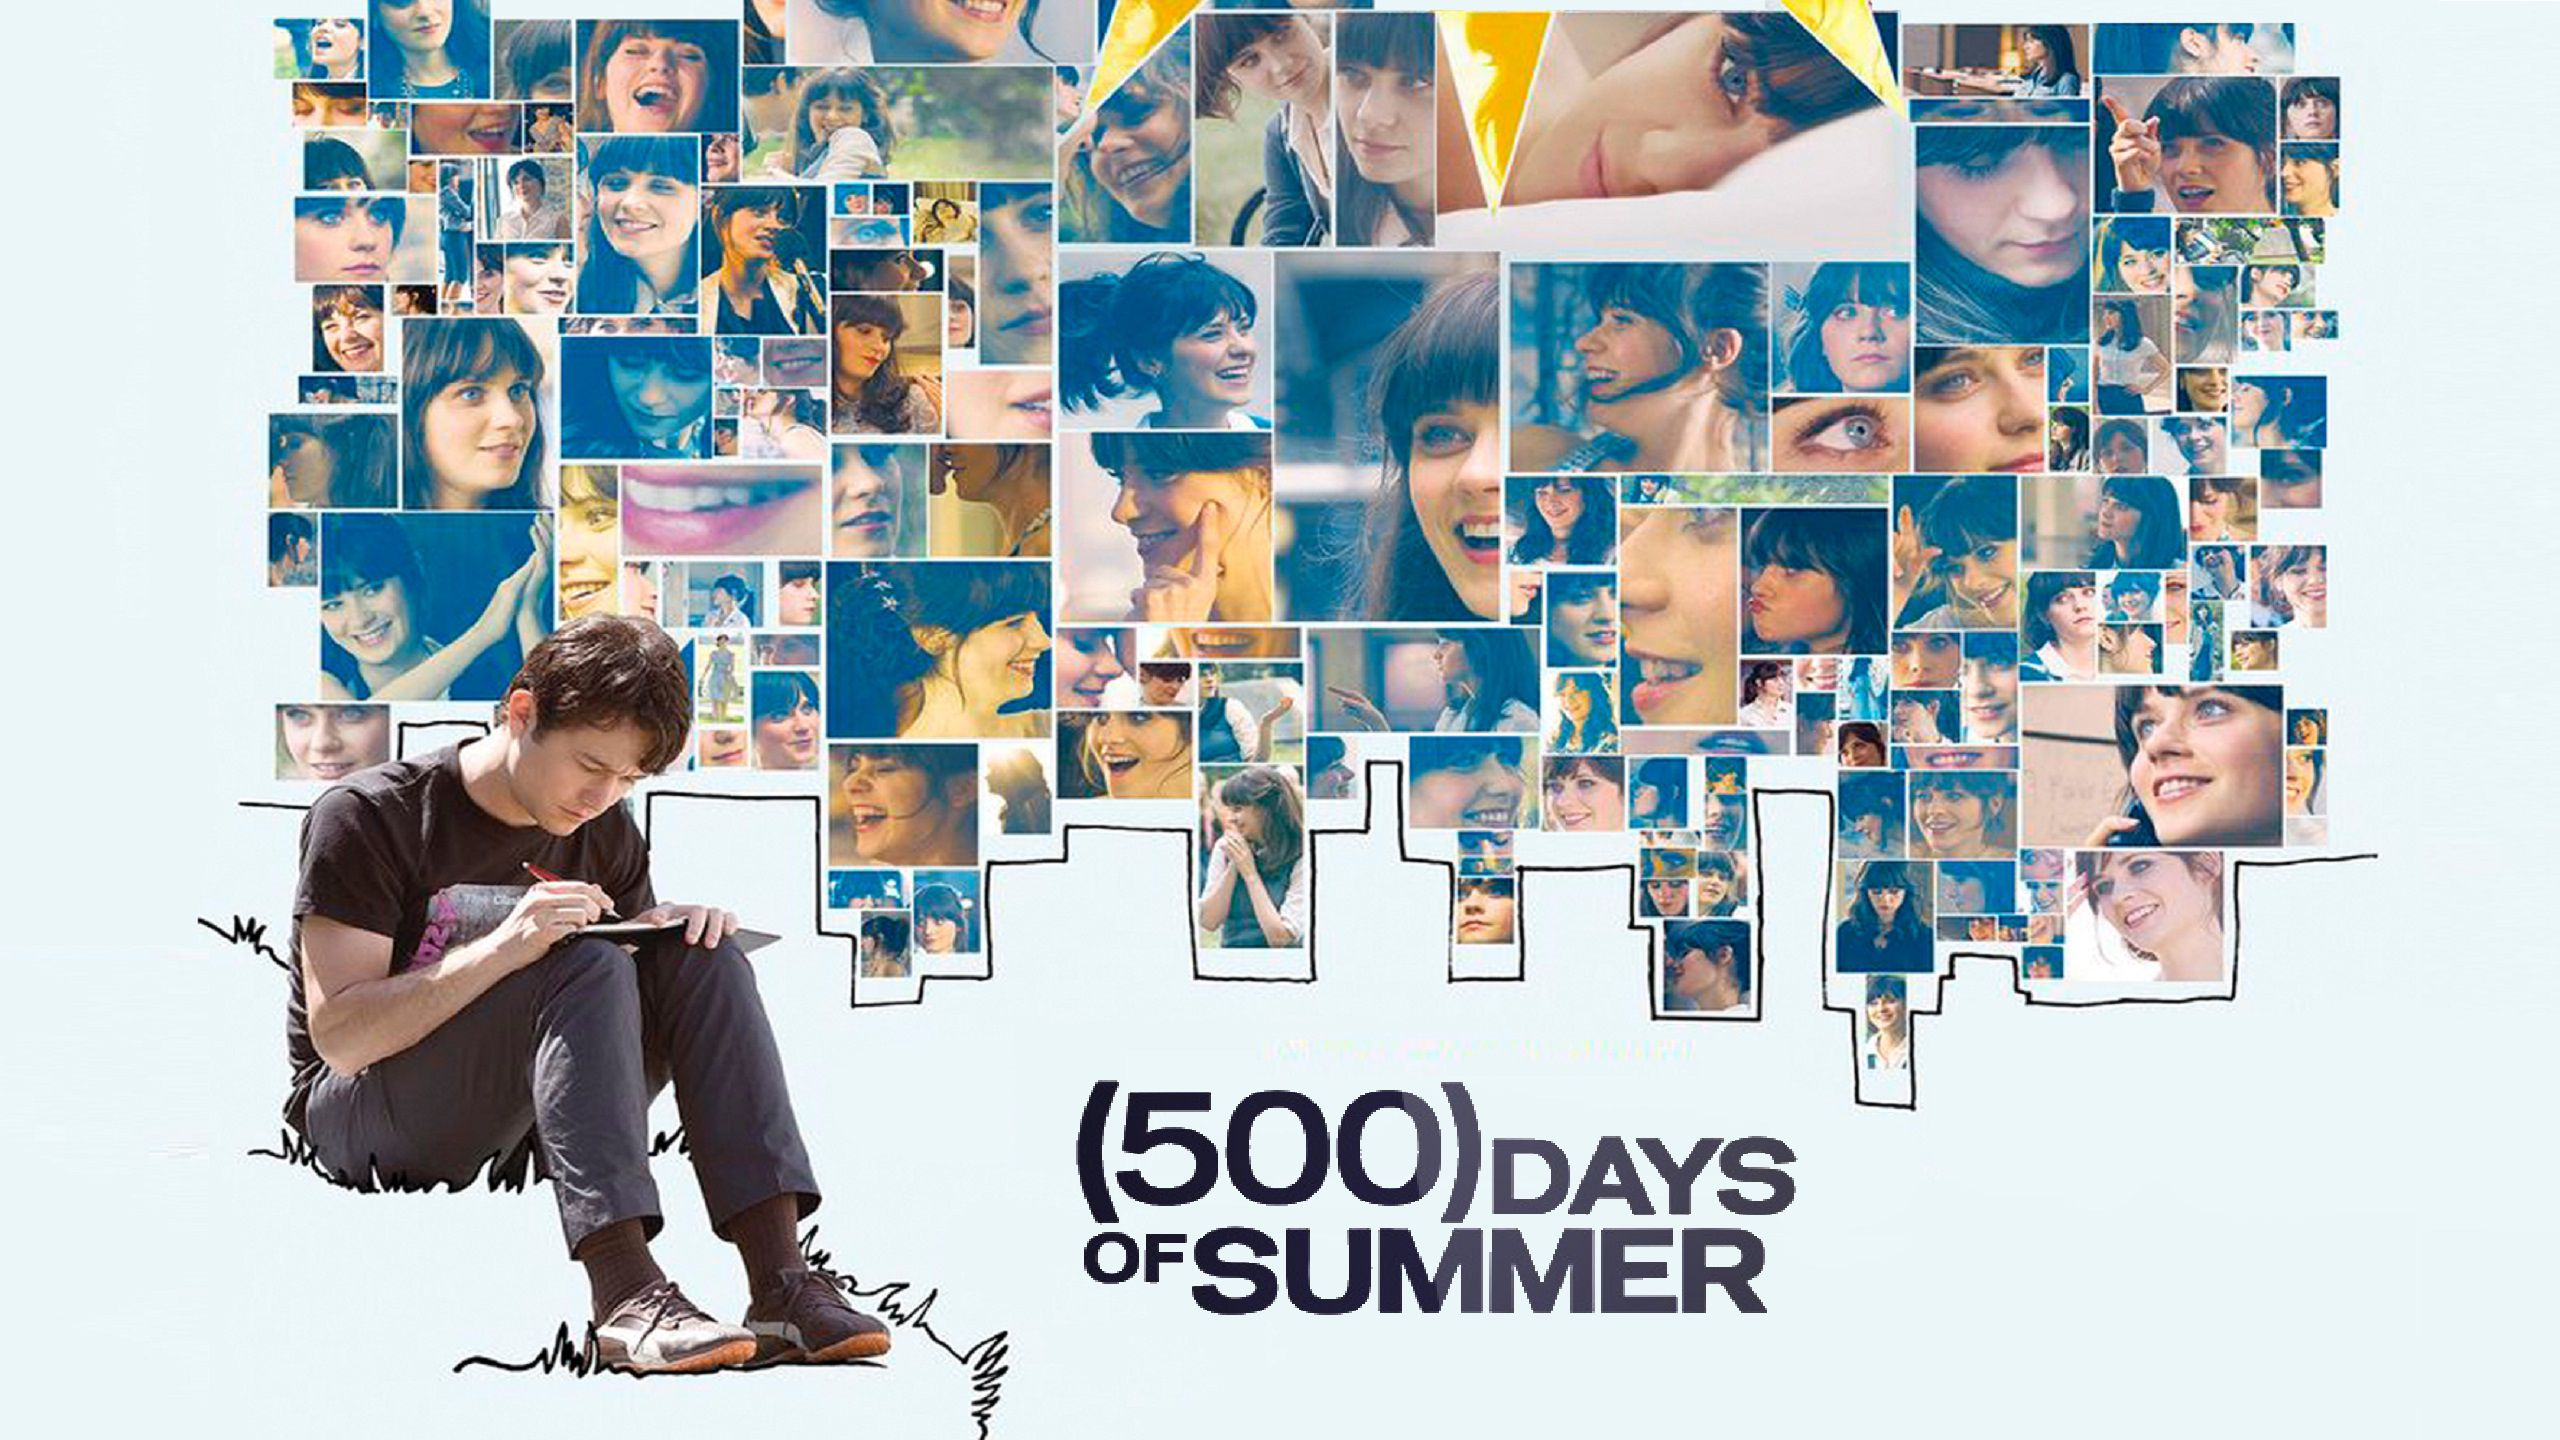 500 Days of Summer 2009 2 Wallpaper & Poster